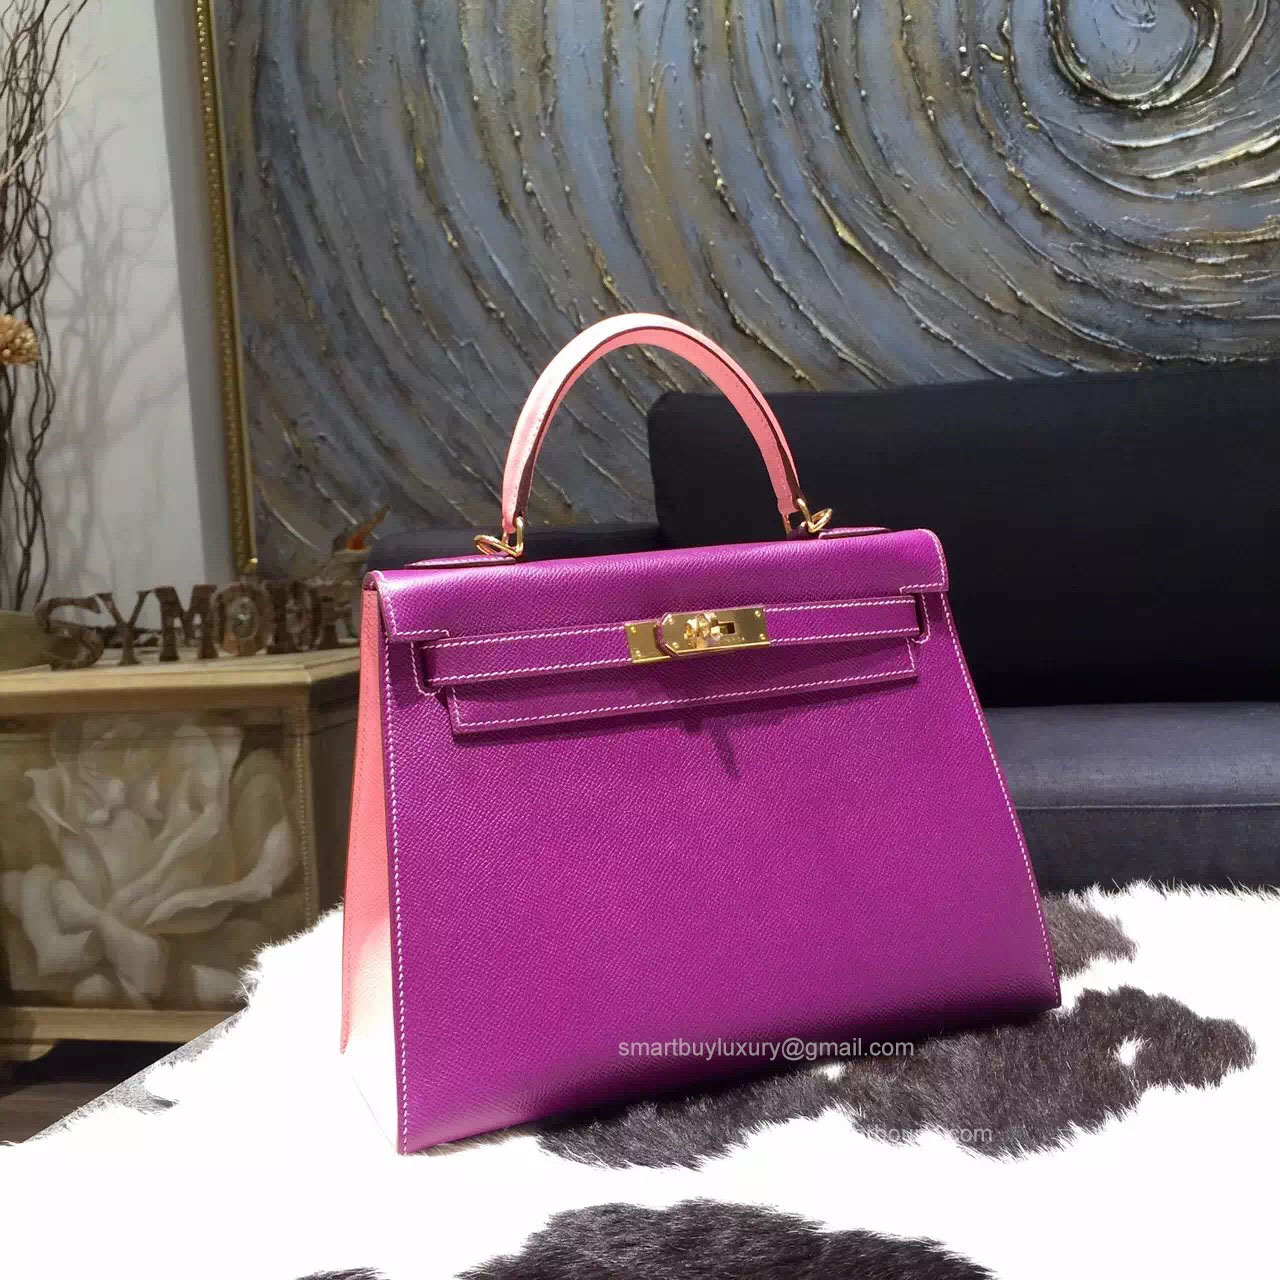 8d14eb81f59 Hermes Kelly 32 Bag Bicolor Anemone p9 Leather Handstitched Gold hw -